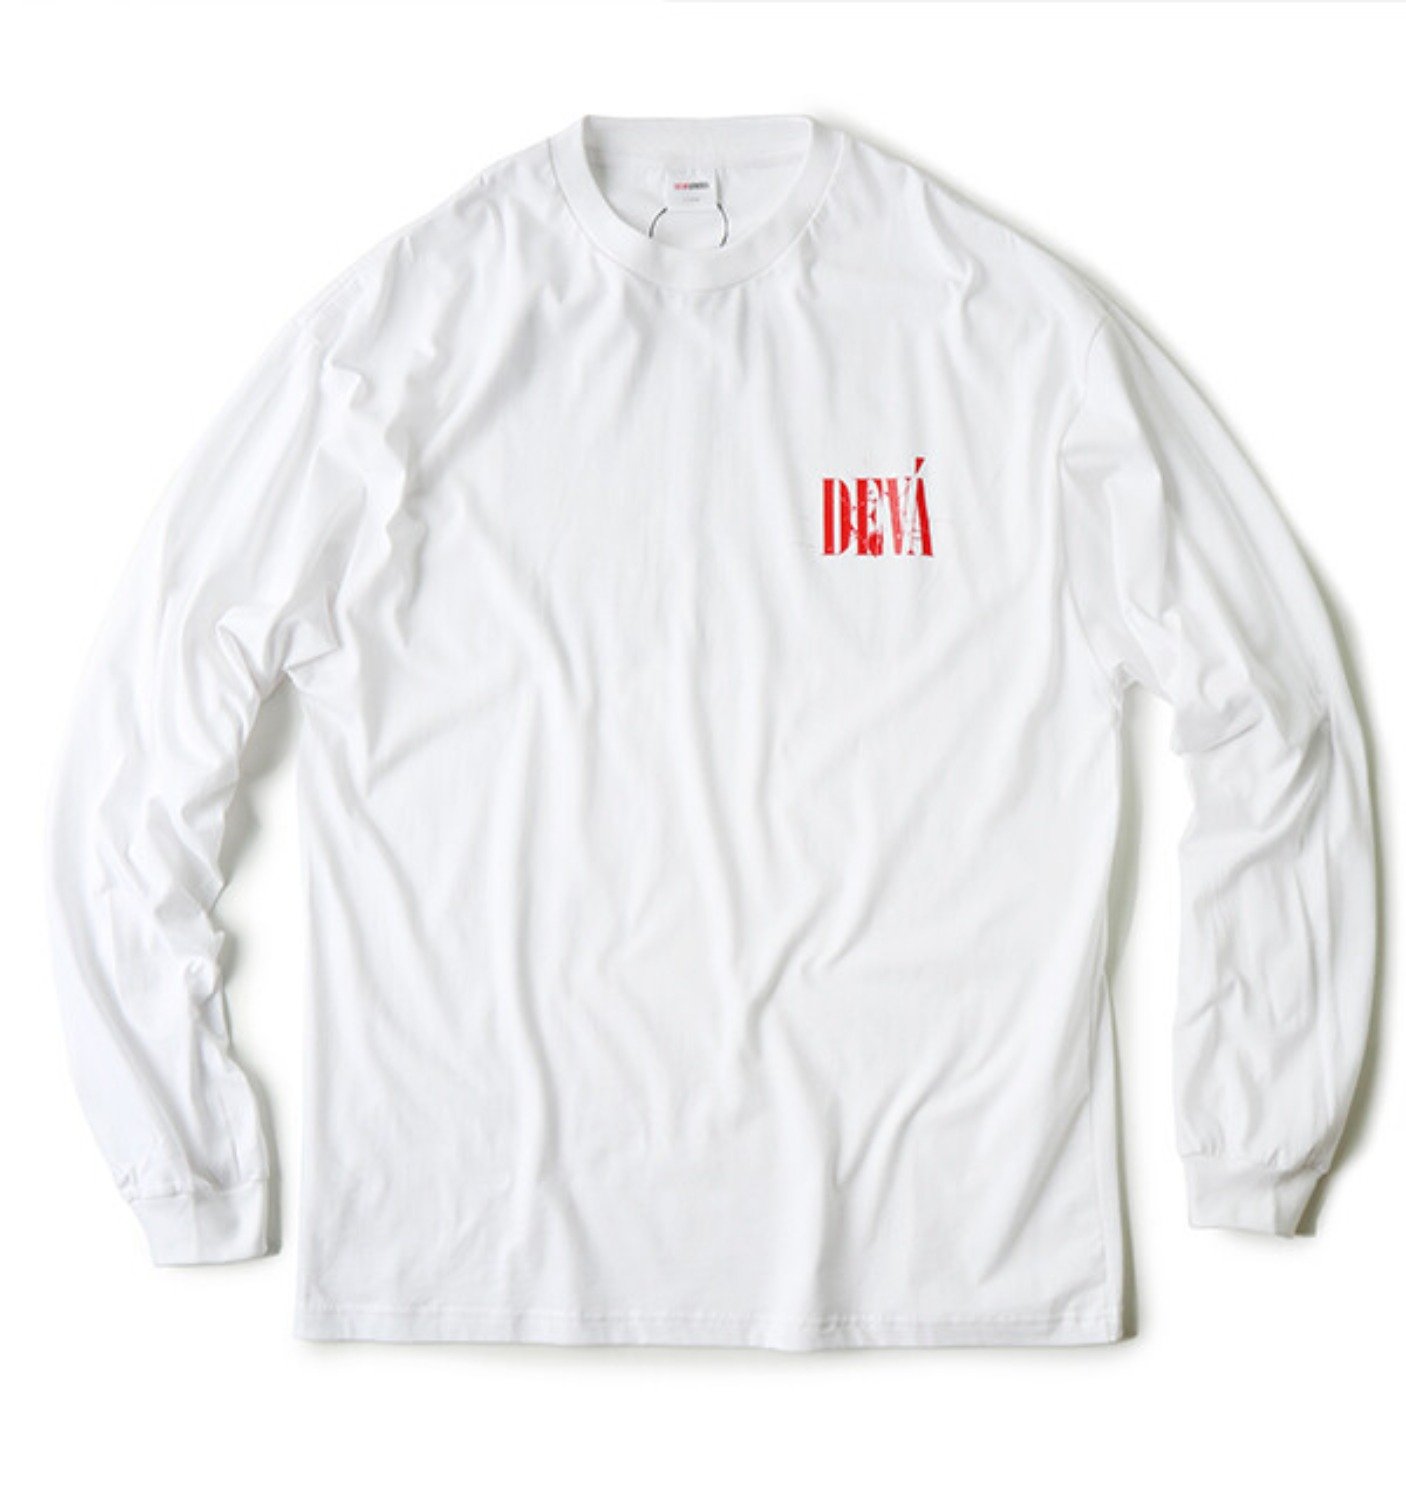 CRACKED L/S T-SHIRT WHITE